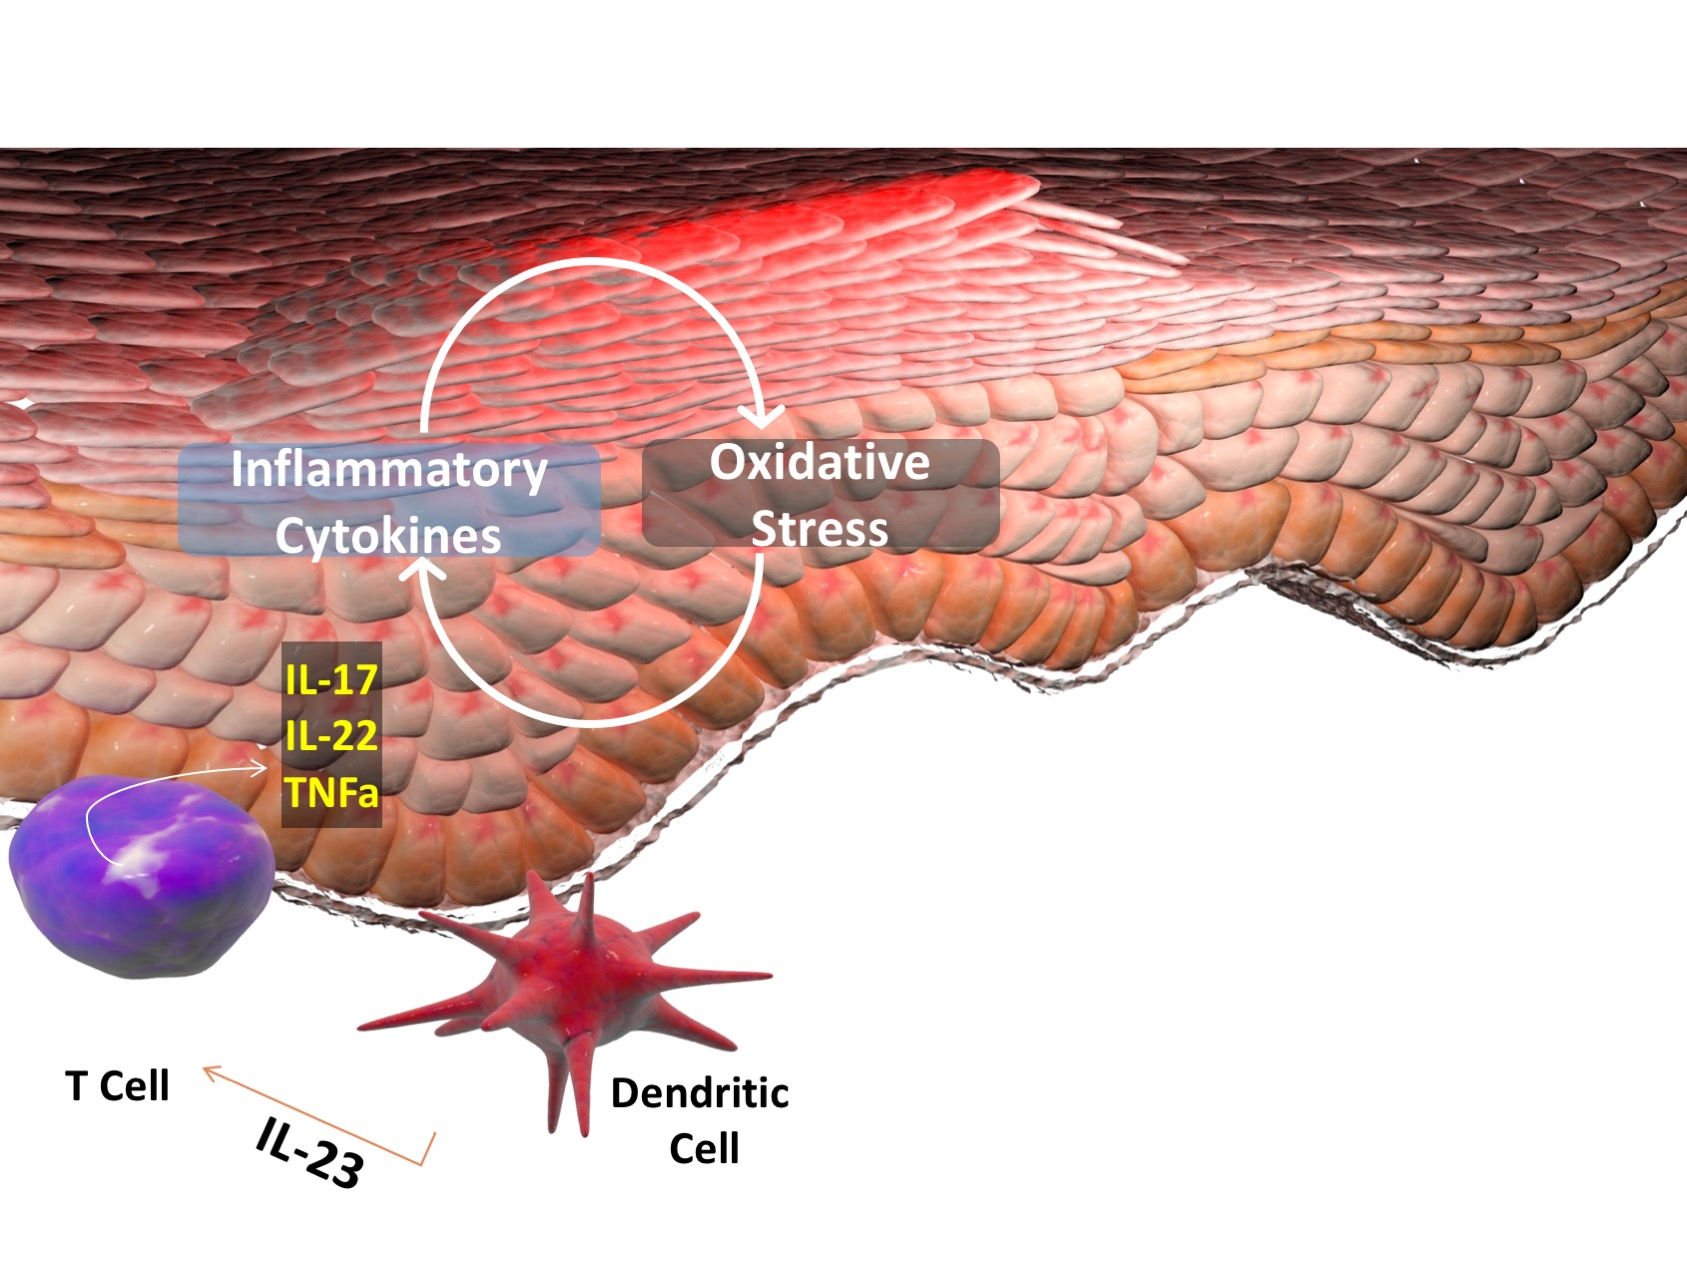 In Psoriasis, multiple inflammatory cytokines cause oxidative stress